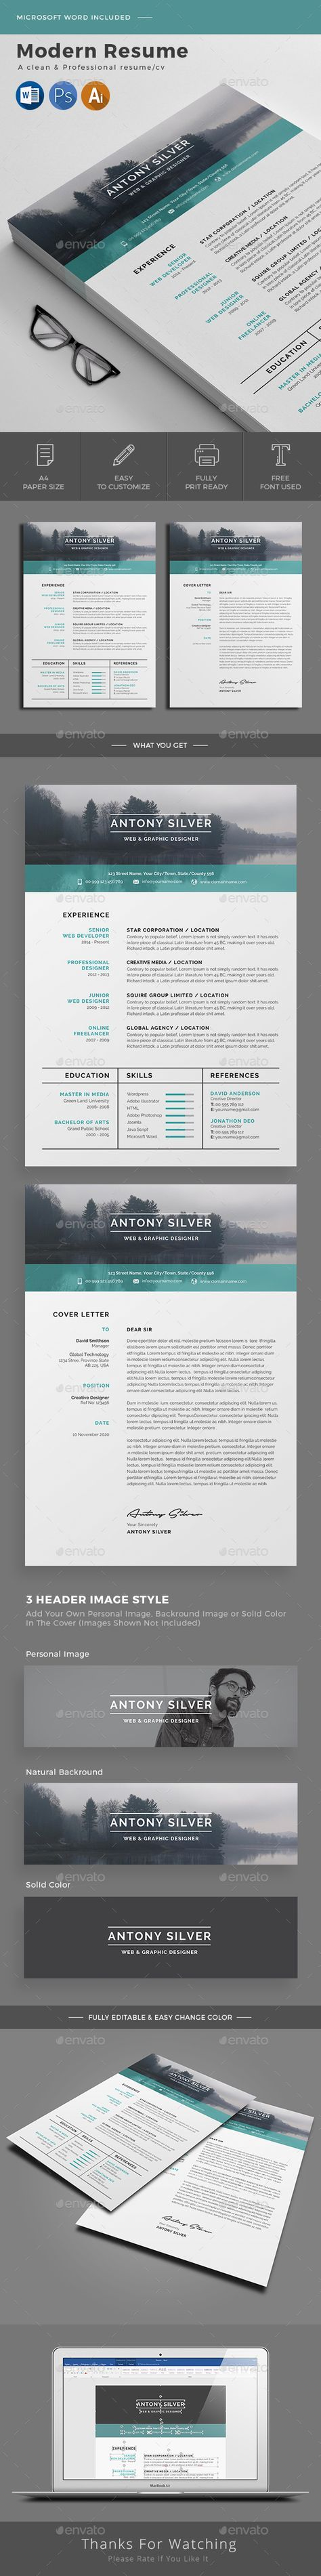 10 best Resume images on Pinterest | Resume help, Cover letter for ...